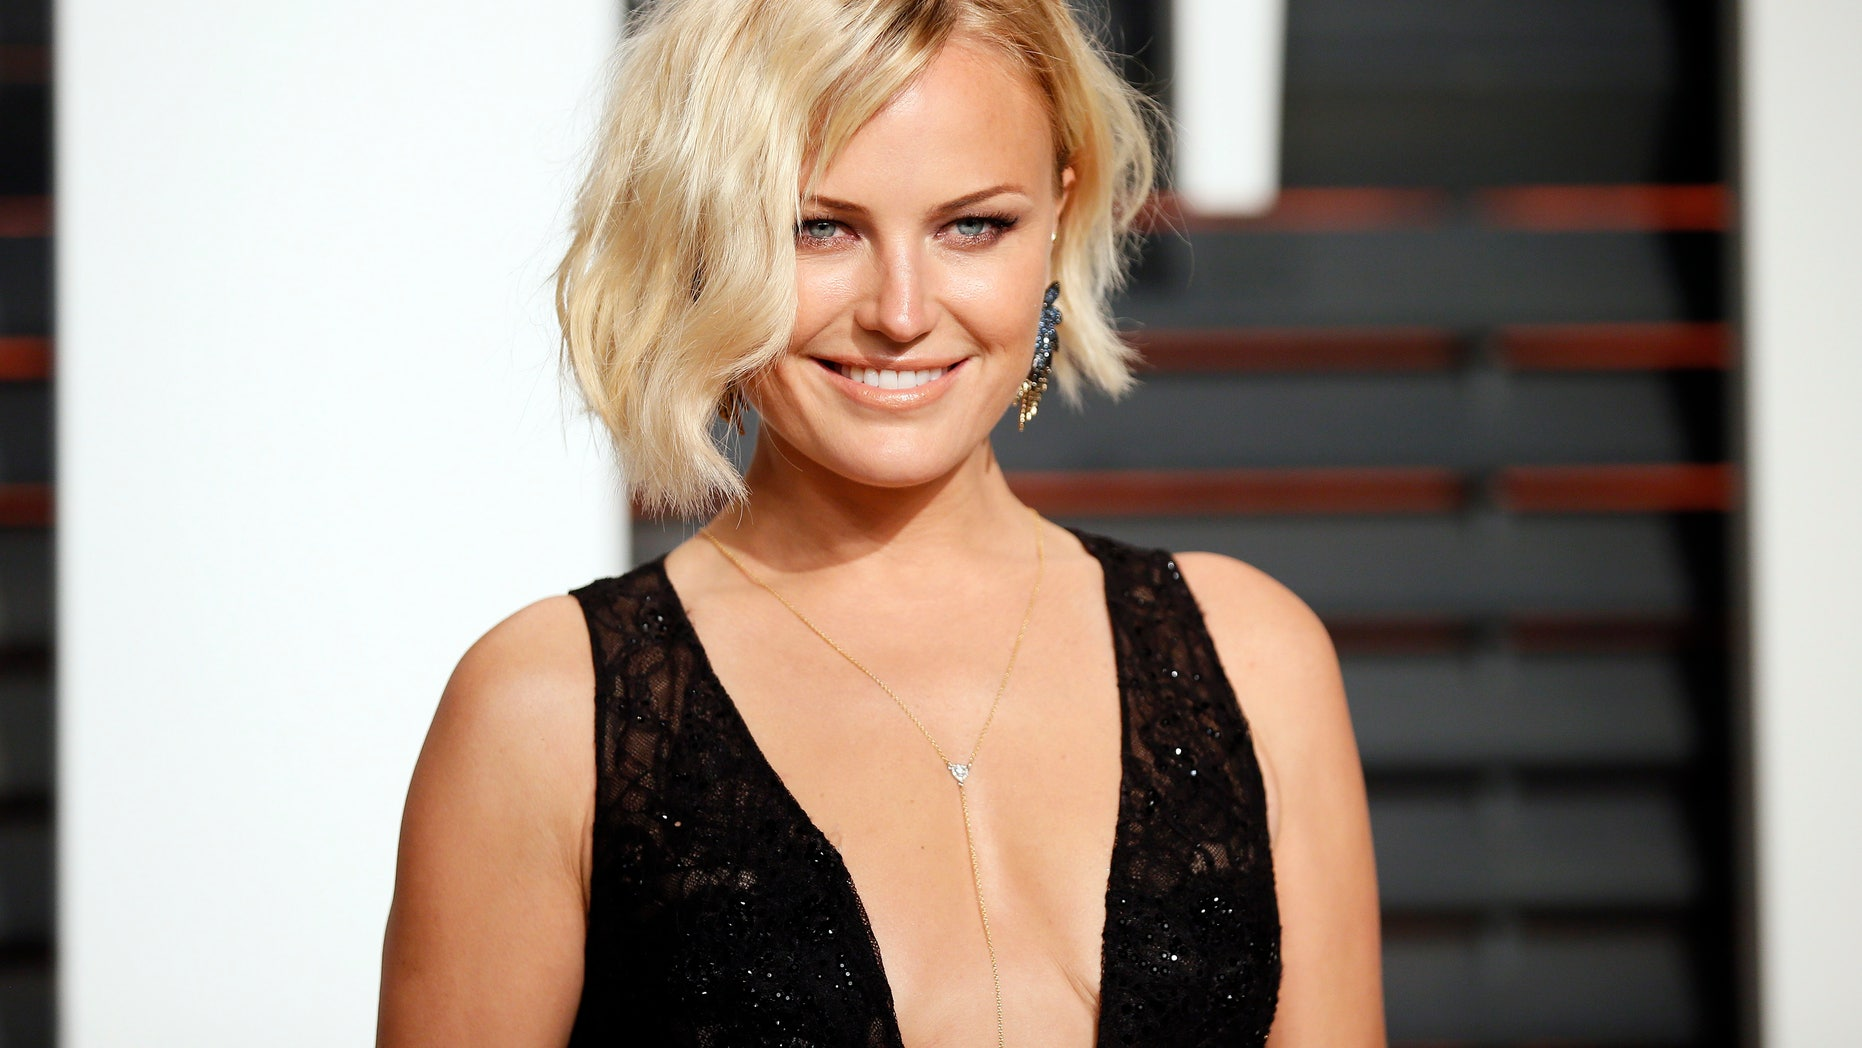 Actress Malin Akerman arrives at the 2015 Vanity Fair Oscar Party in Beverly Hills, California February 22, 2015. REUTERS/Danny Moloshok (UNITED STATES - Tags:ENTERTAINMENT) (VANITYFAIR-ARRIVALS) - RTR4QQI5